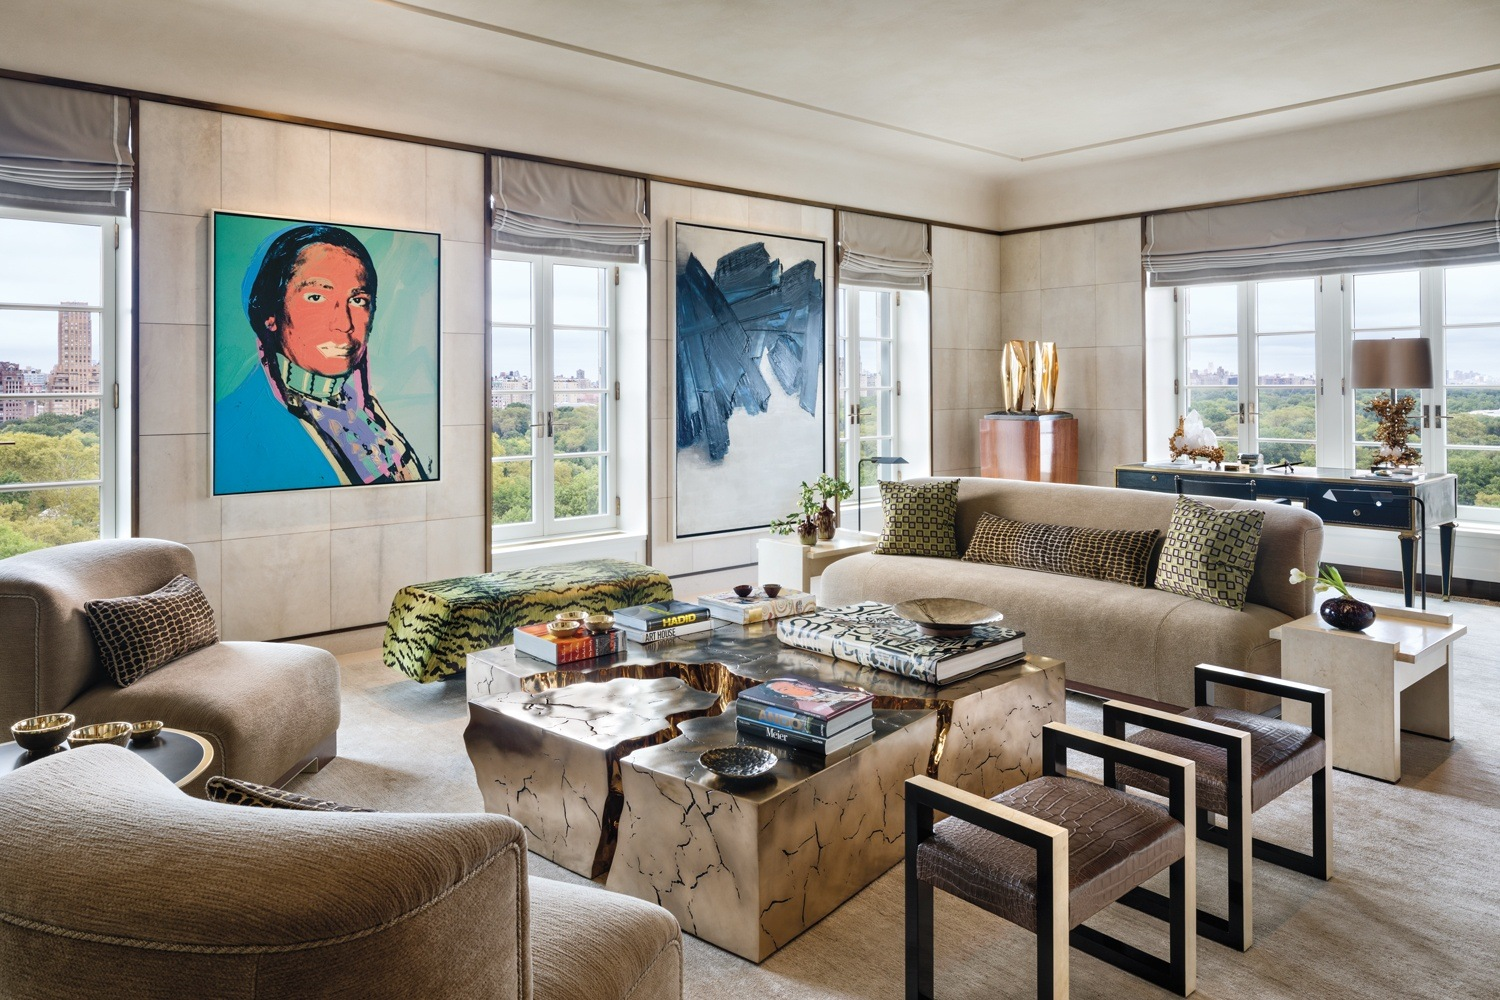 In this living room, designed by Deborah Berke and Christine van Deusen, paintings by Andy Warhol and Pierre Soulages overlook a seating area that includes pieces by Achille Salvagni, Jacques Adnet, and Based Upon. Also in the room are a Barbara Hepworth sculpture, Marc du Plantier desk, and Claude Boeltz lamp.